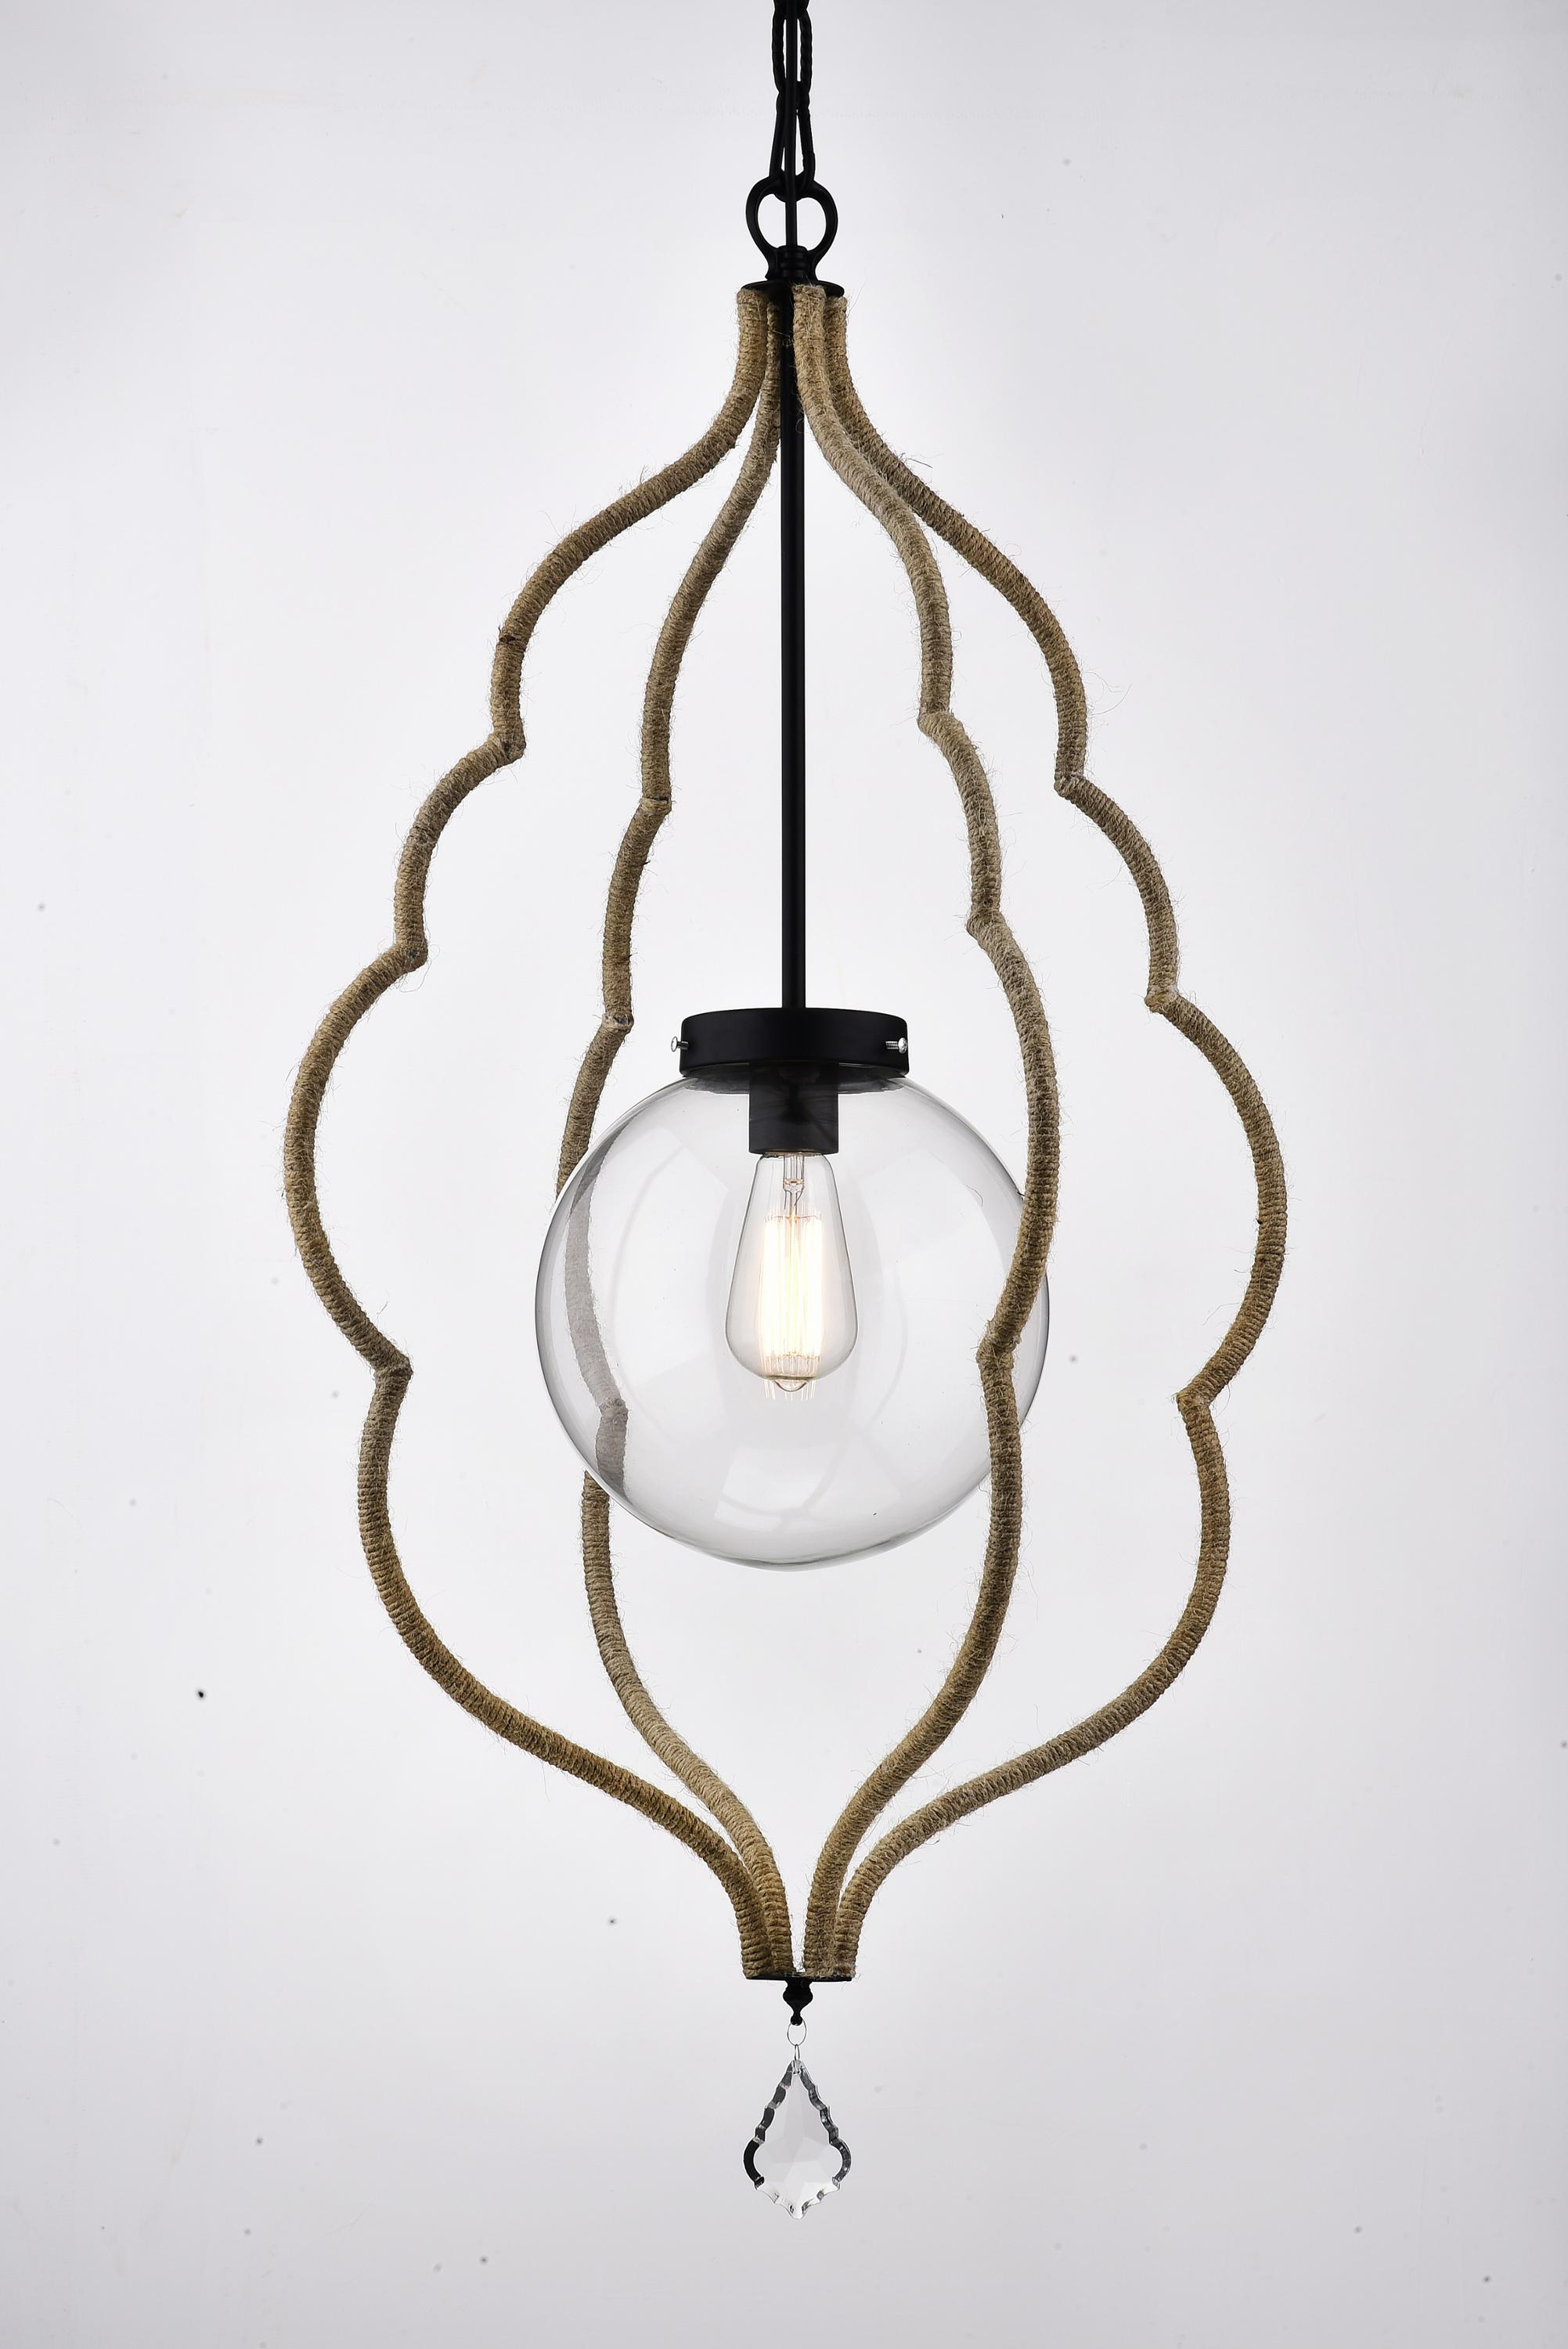 American style decorative loft industrial chandelier rope vintage pendant lamp